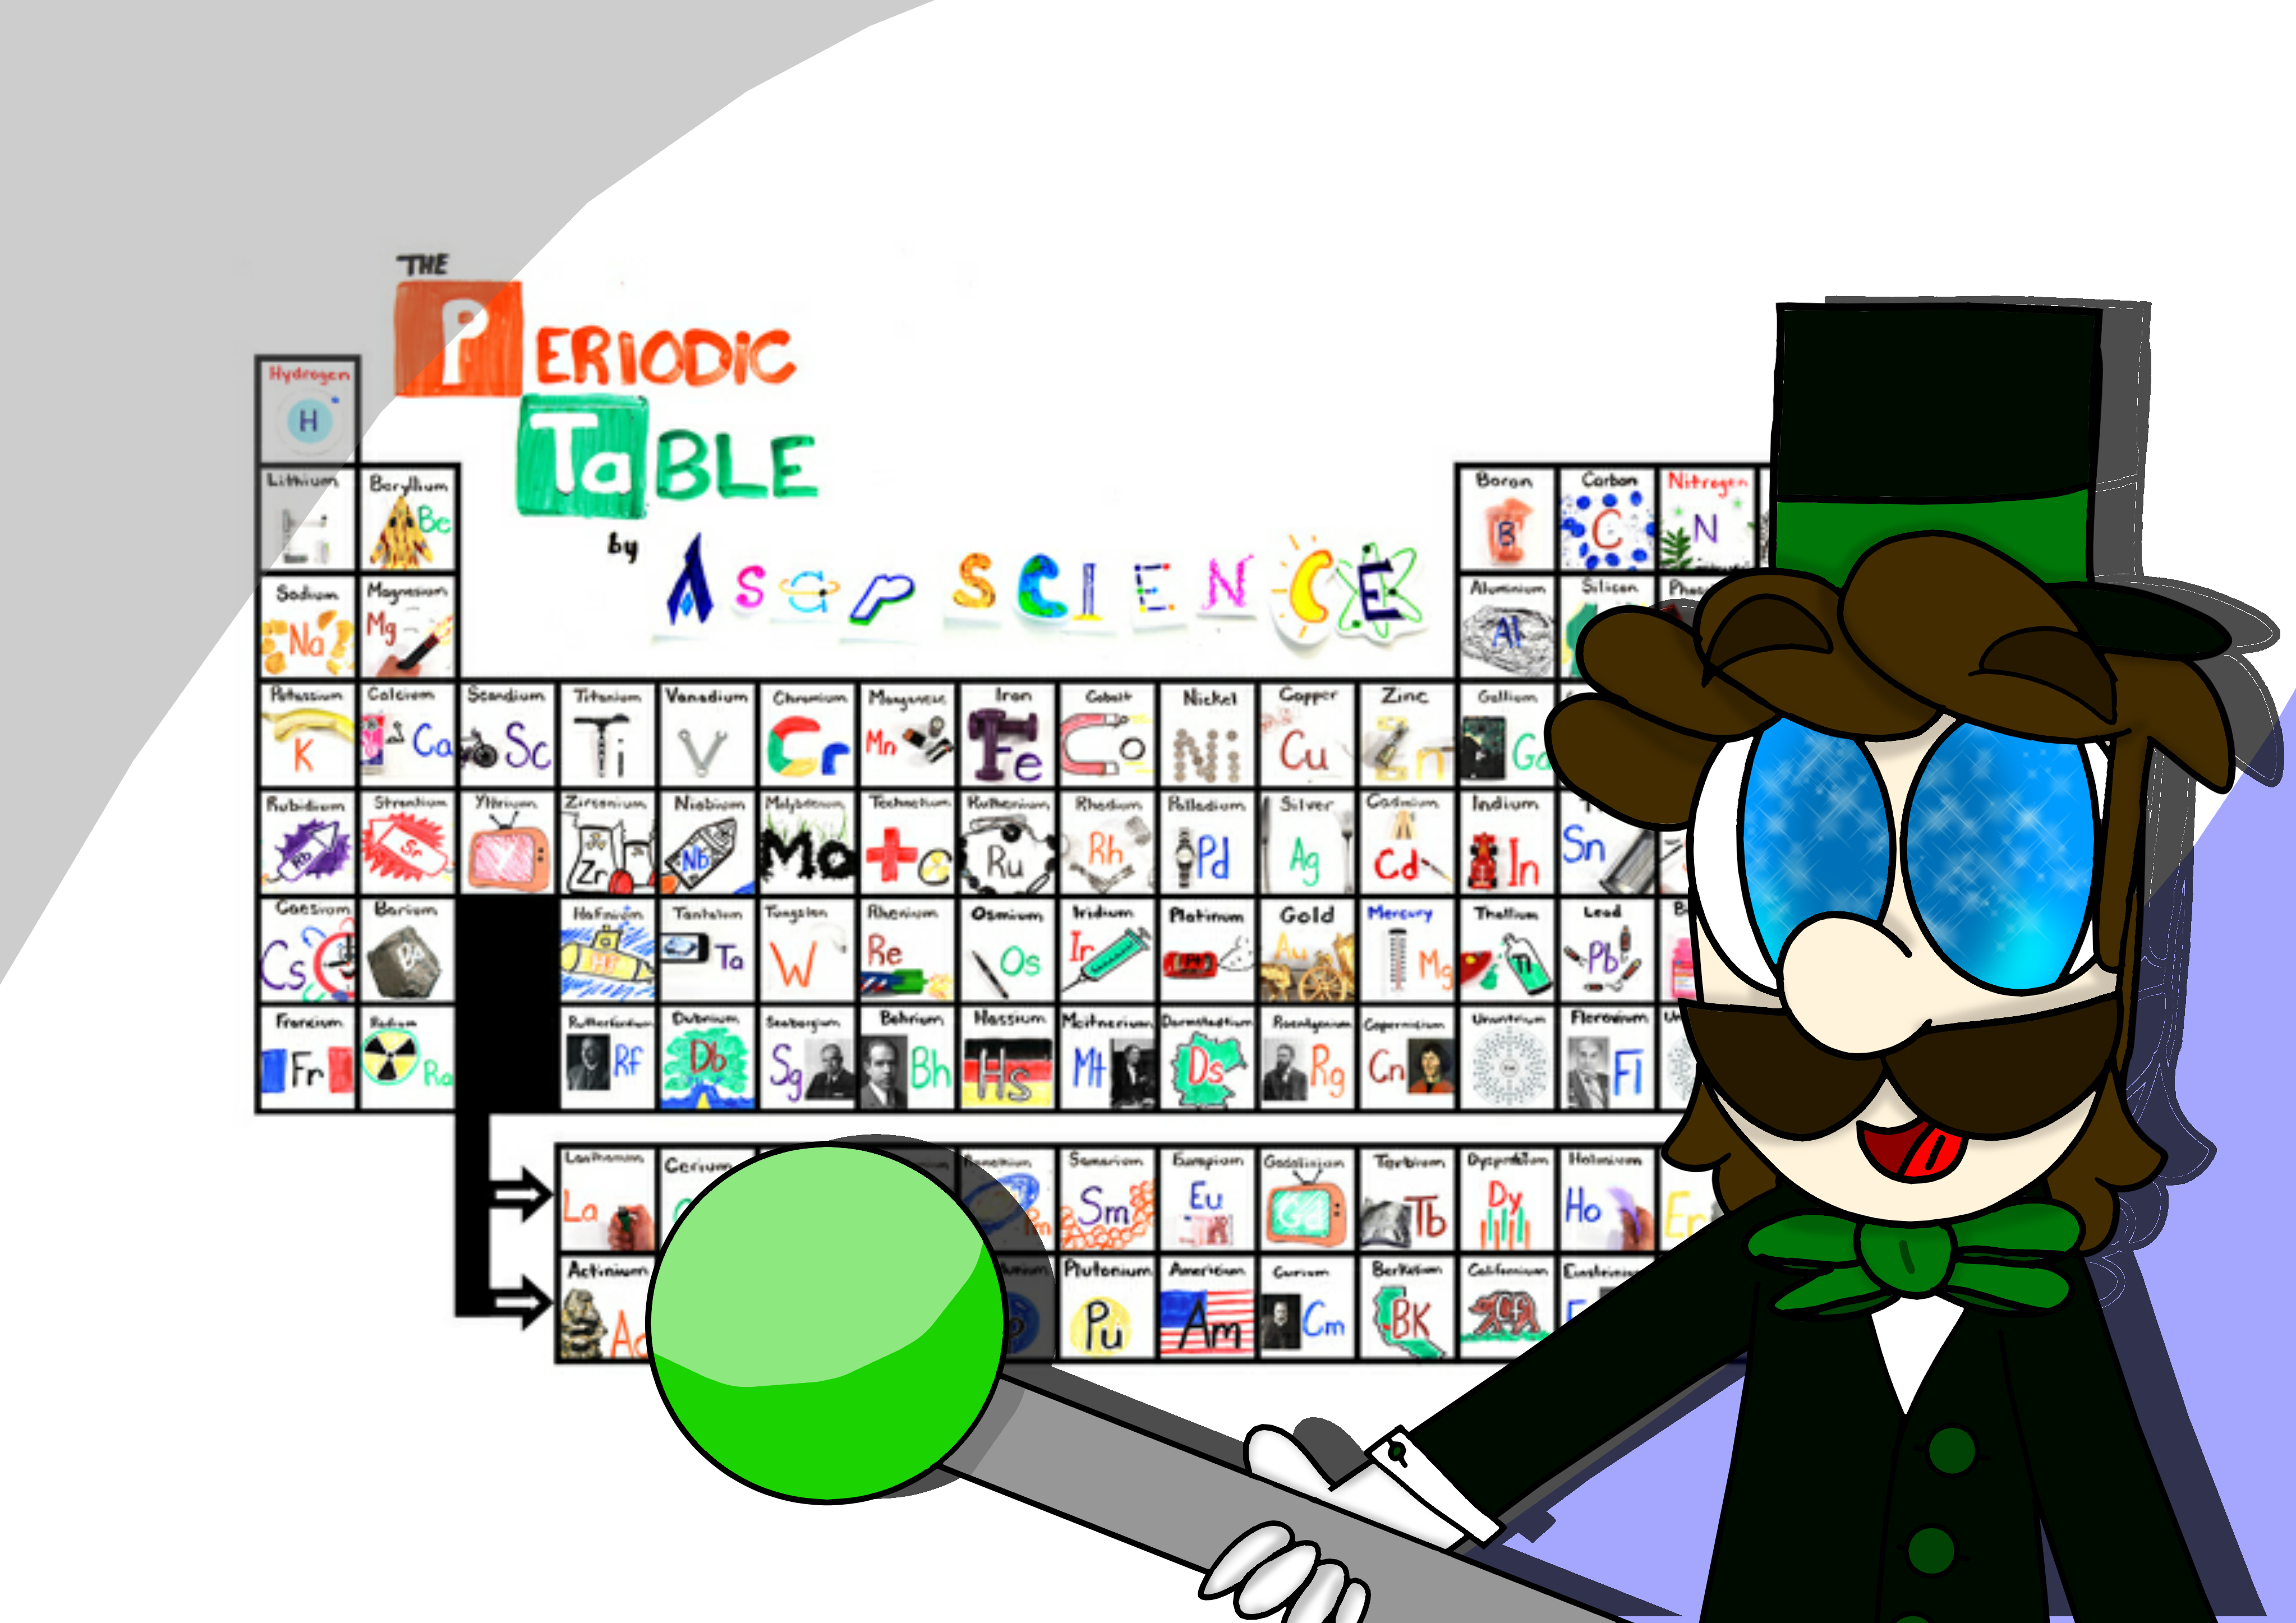 Periodic table song asap science image collections periodic periodic table clip art class diagram tools basic car electrical redraw the periodic table song by gamestrikefo Image collections